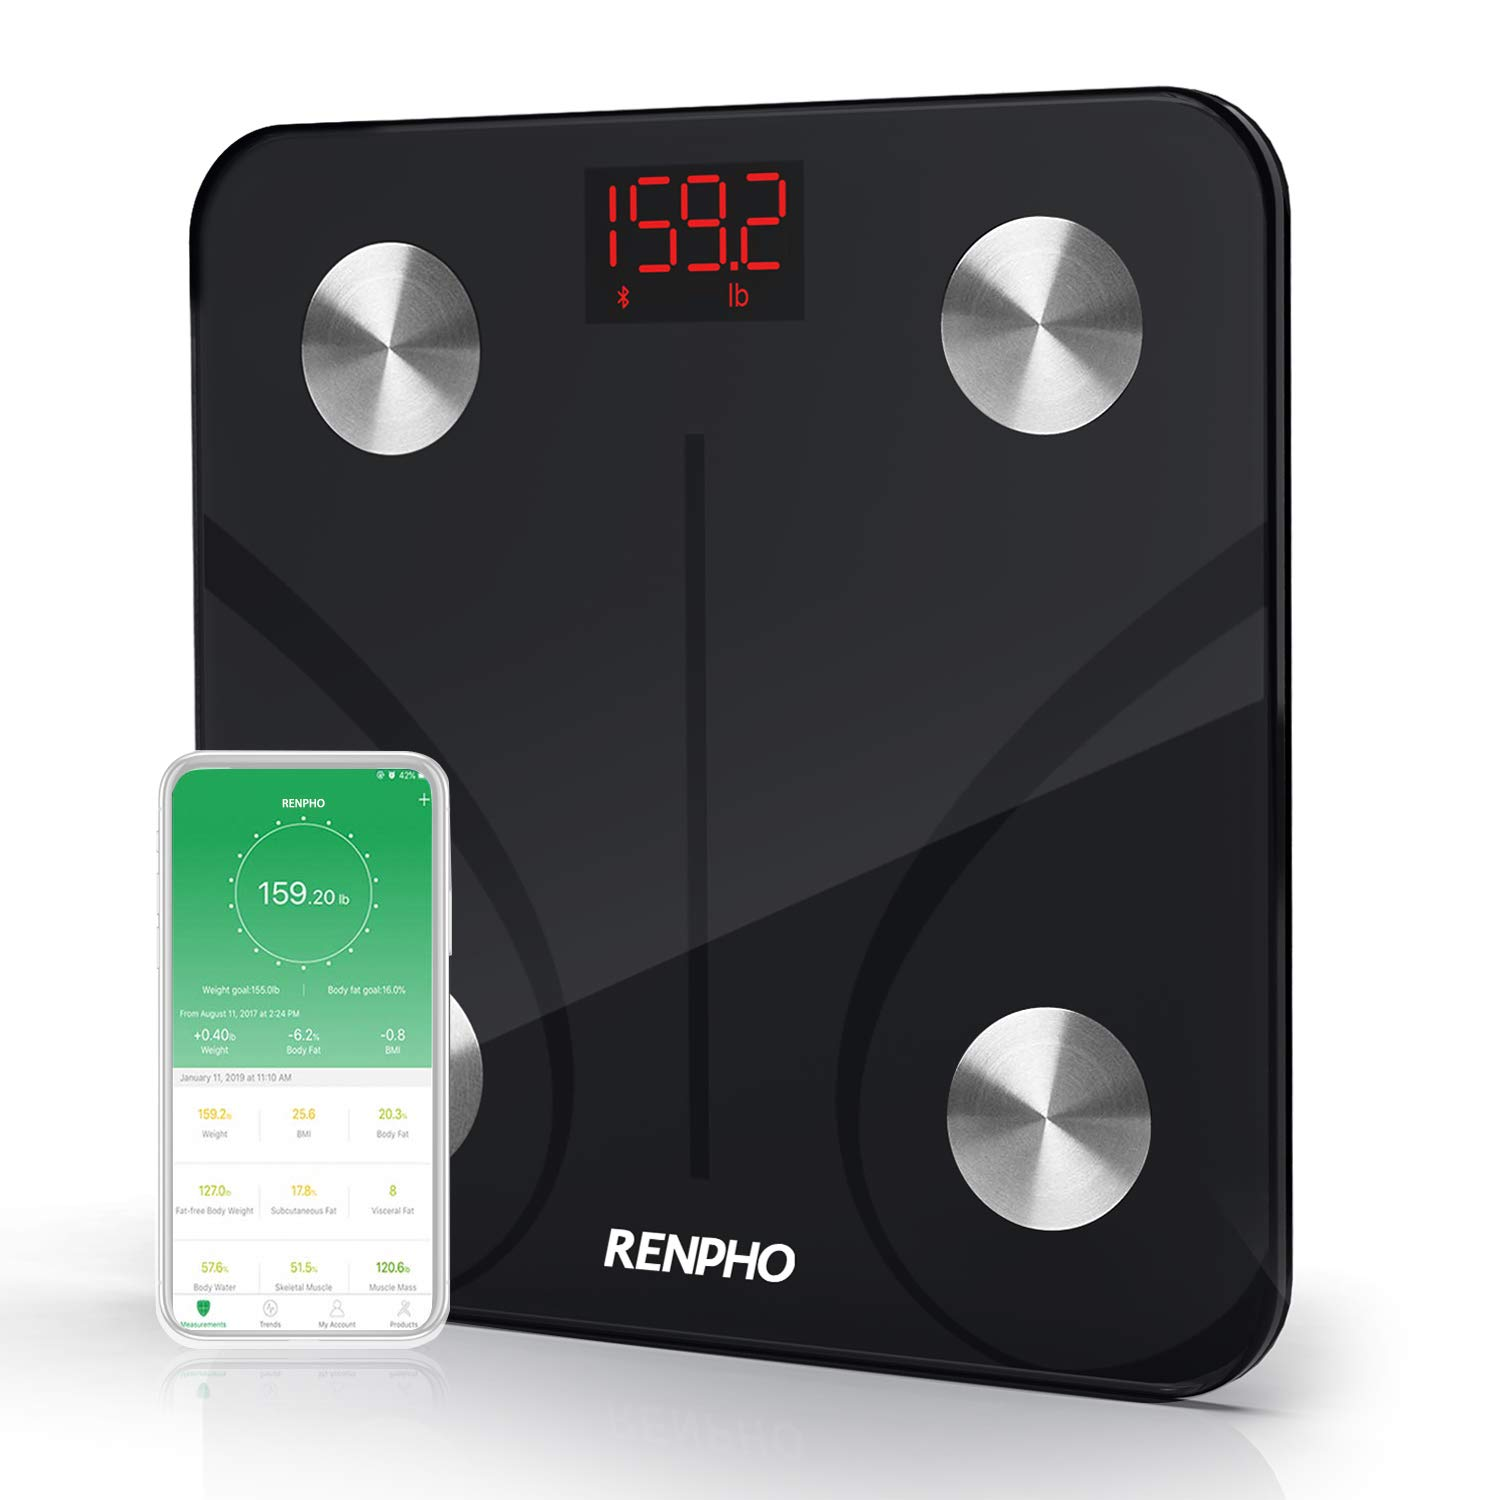 RENPHO Bluetooth Body Fat Scale, Smart Digital Bathroom Scale Wireless Weighing Body Composition Analyzer BMI Scale Health Monitor with Smartphone APP, Weight, Body Fat%, 396 lbs/180kg